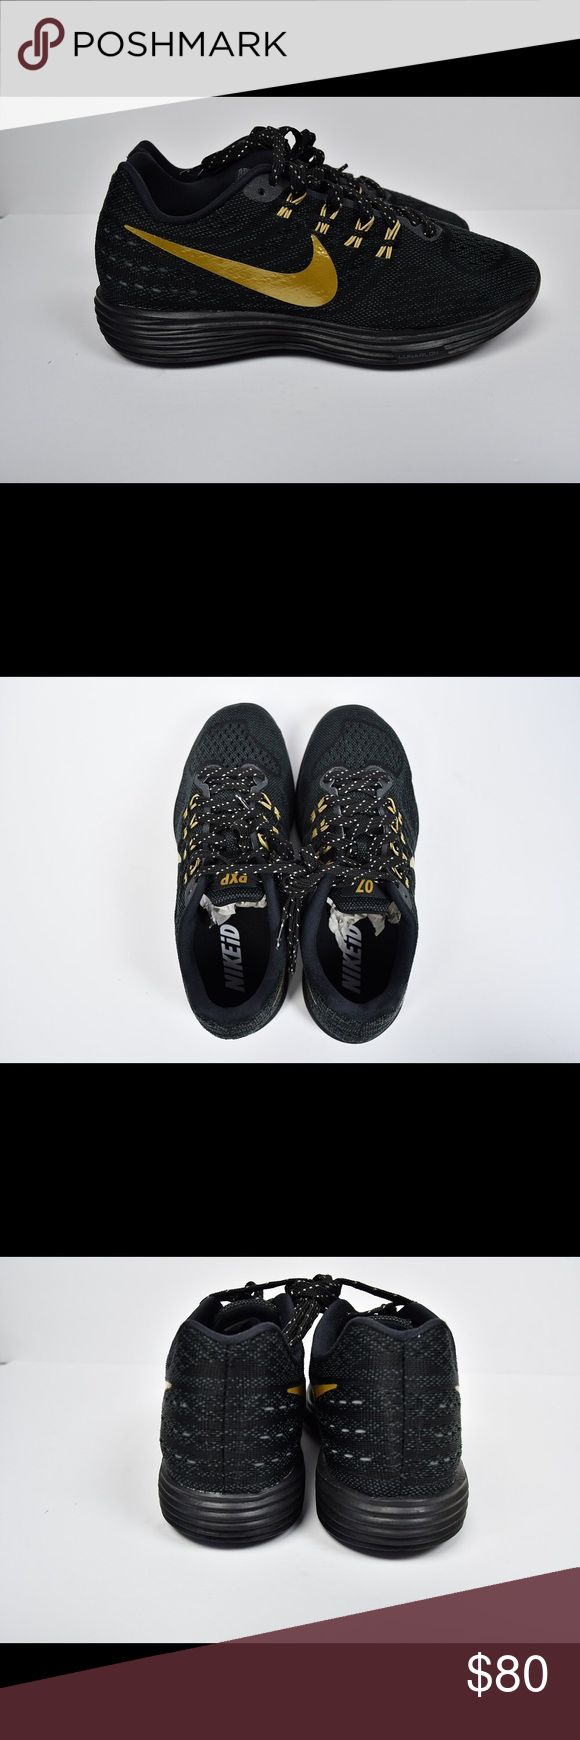 Nike ID LunarTempo 2 sneakers black and gold Sz 7 Brand new with no box Nike ID LunarTempo 2 sneakers black and gold Size 7 Nike Shoes Athletic Shoes